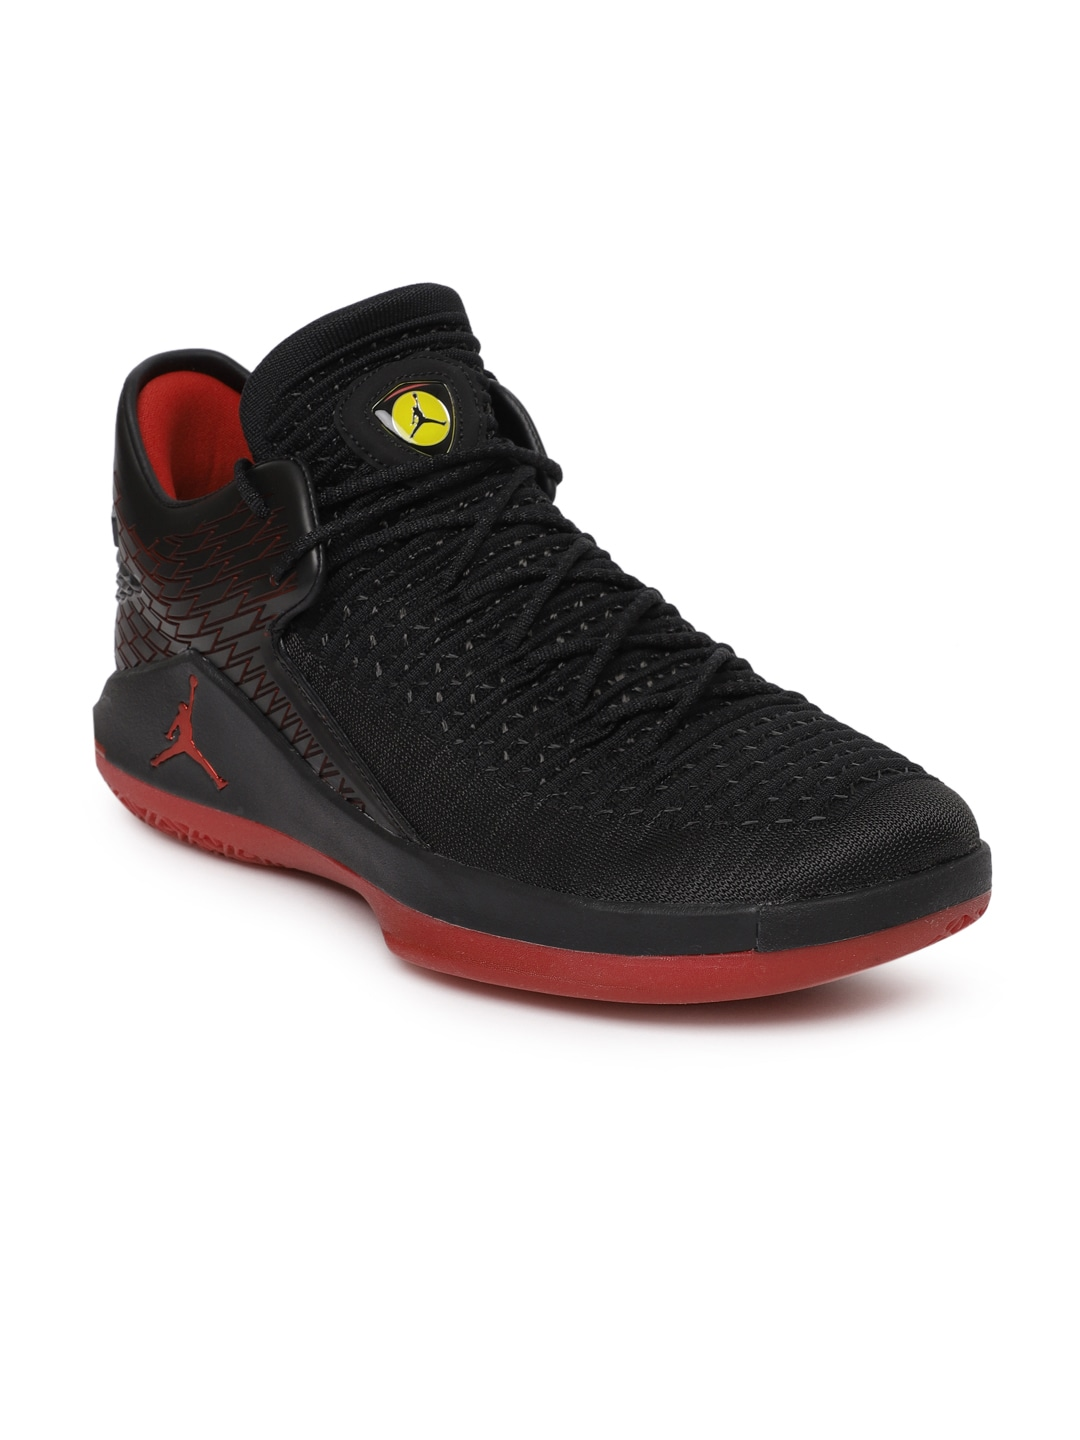 Jordan Shoes - Buy Jordan Shoes For Men Online in India  8f5f06771